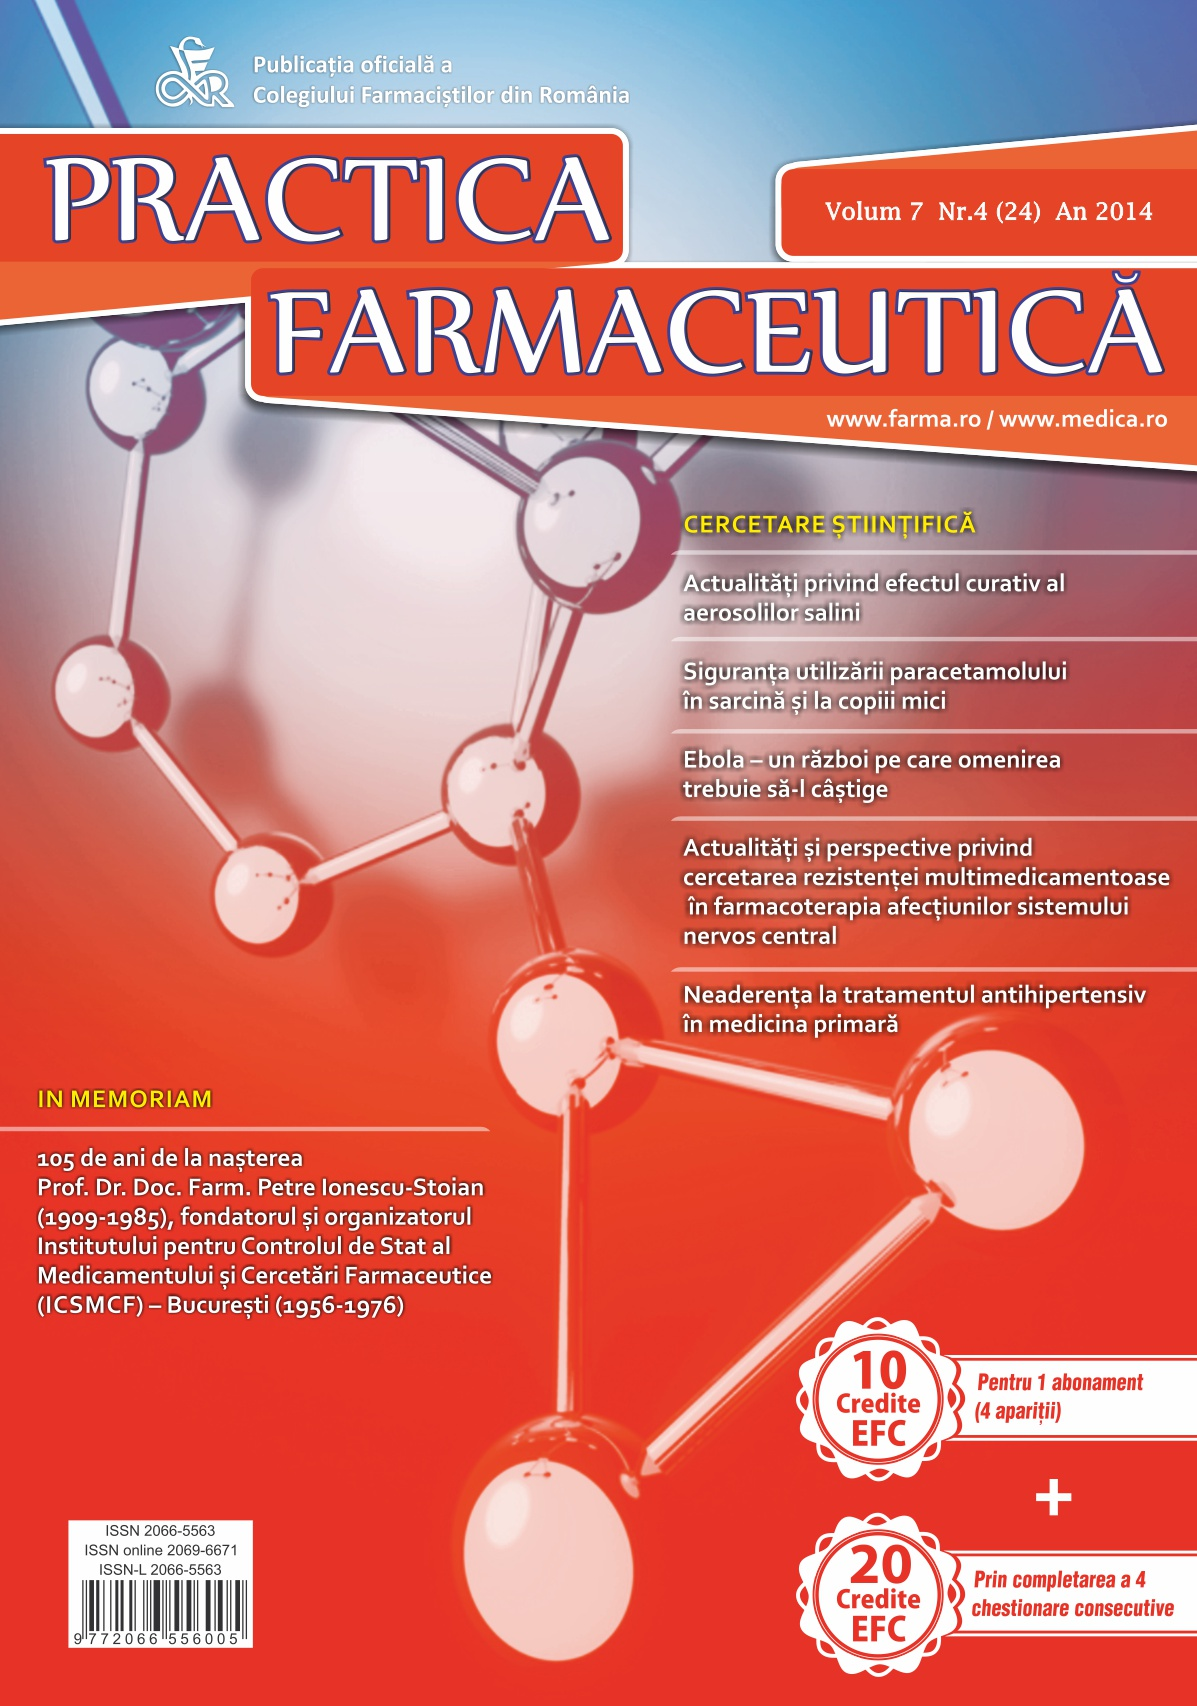 Revista Practica Farmaceutica, Vol. VII, No. 4 (24), 2014